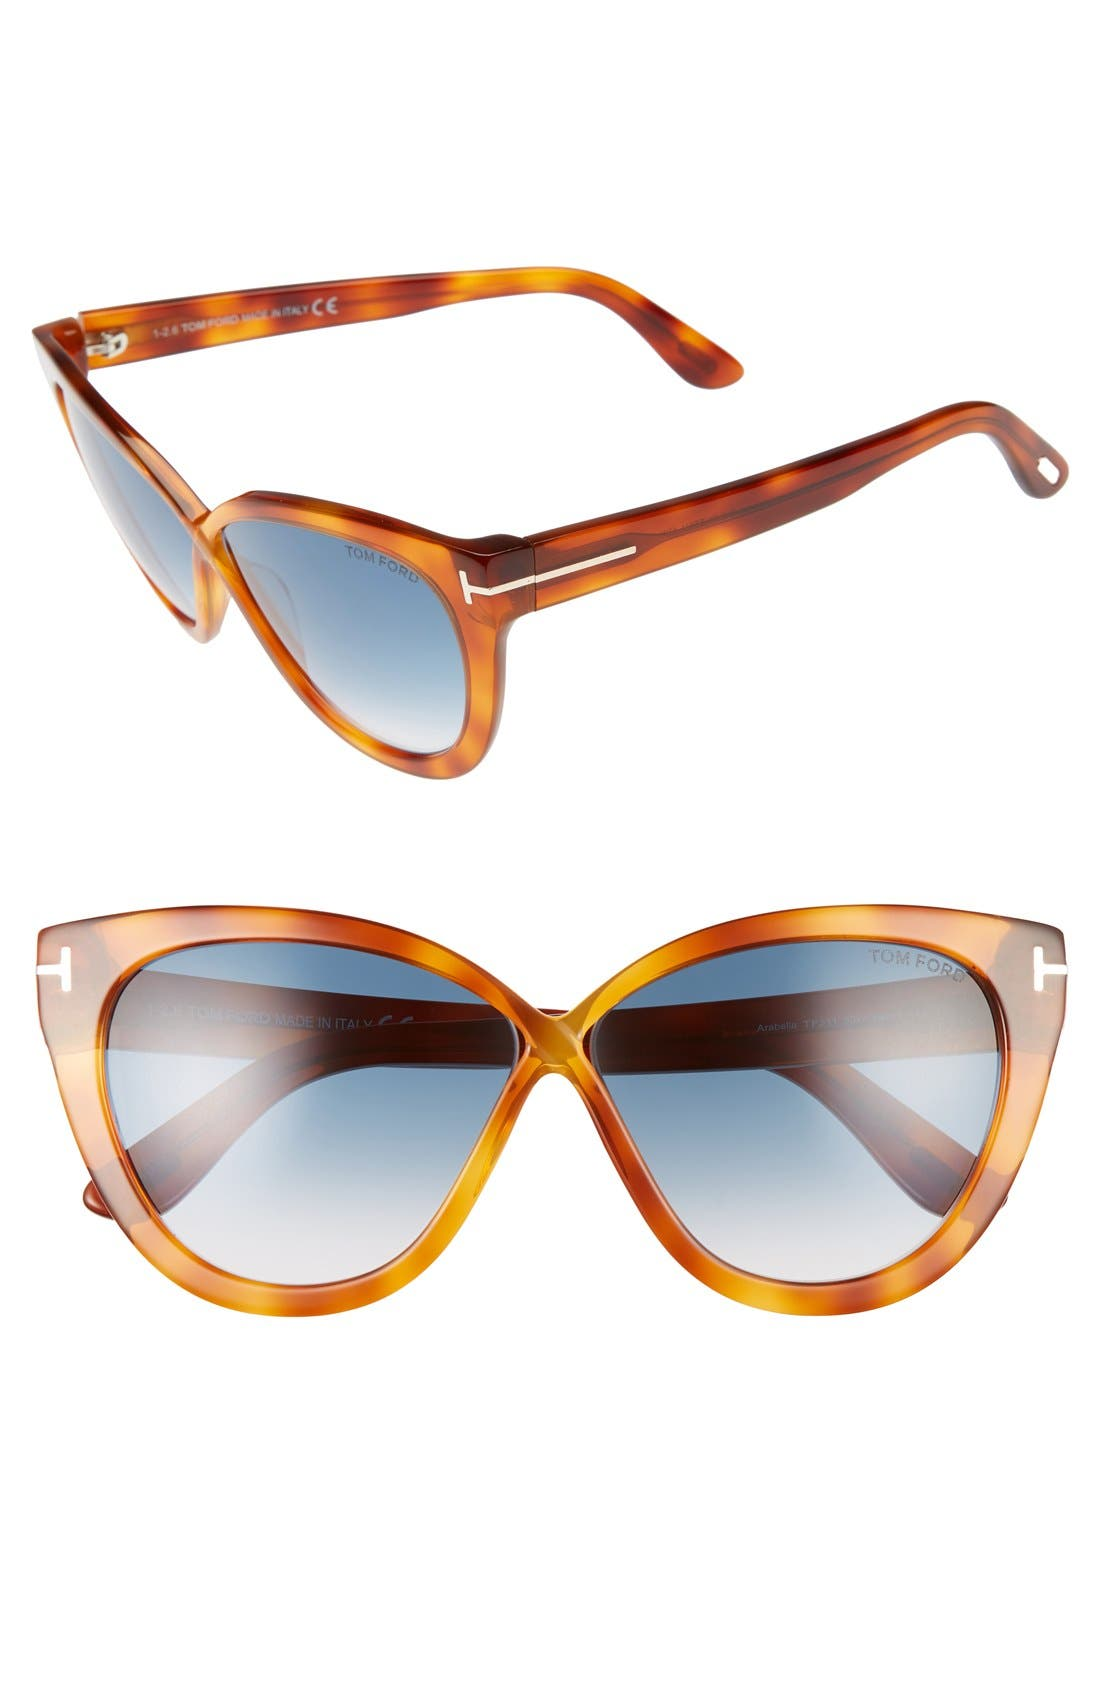 Main Image - Tom Ford Arabella 59mm Cat Eye Sunglasses